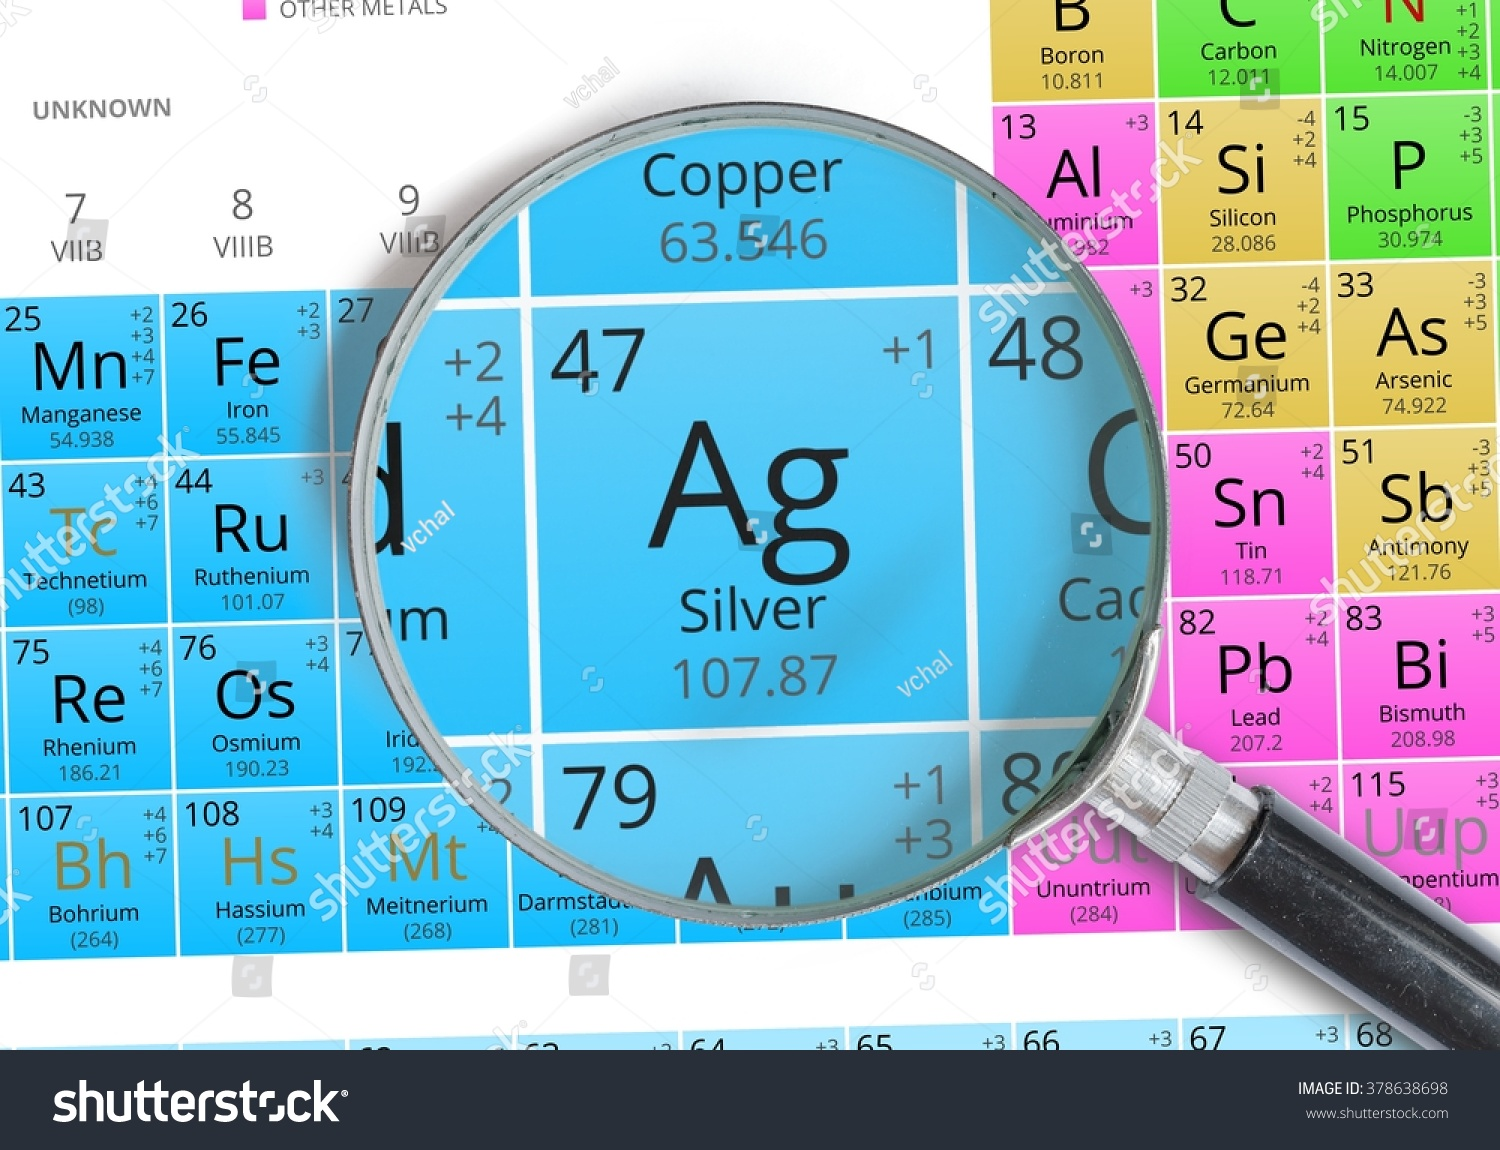 Symbol of silver in periodic table images periodic table images silver element mendeleev periodic table magnified stock photo silver element of mendeleev periodic table magnified with gamestrikefo Choice Image